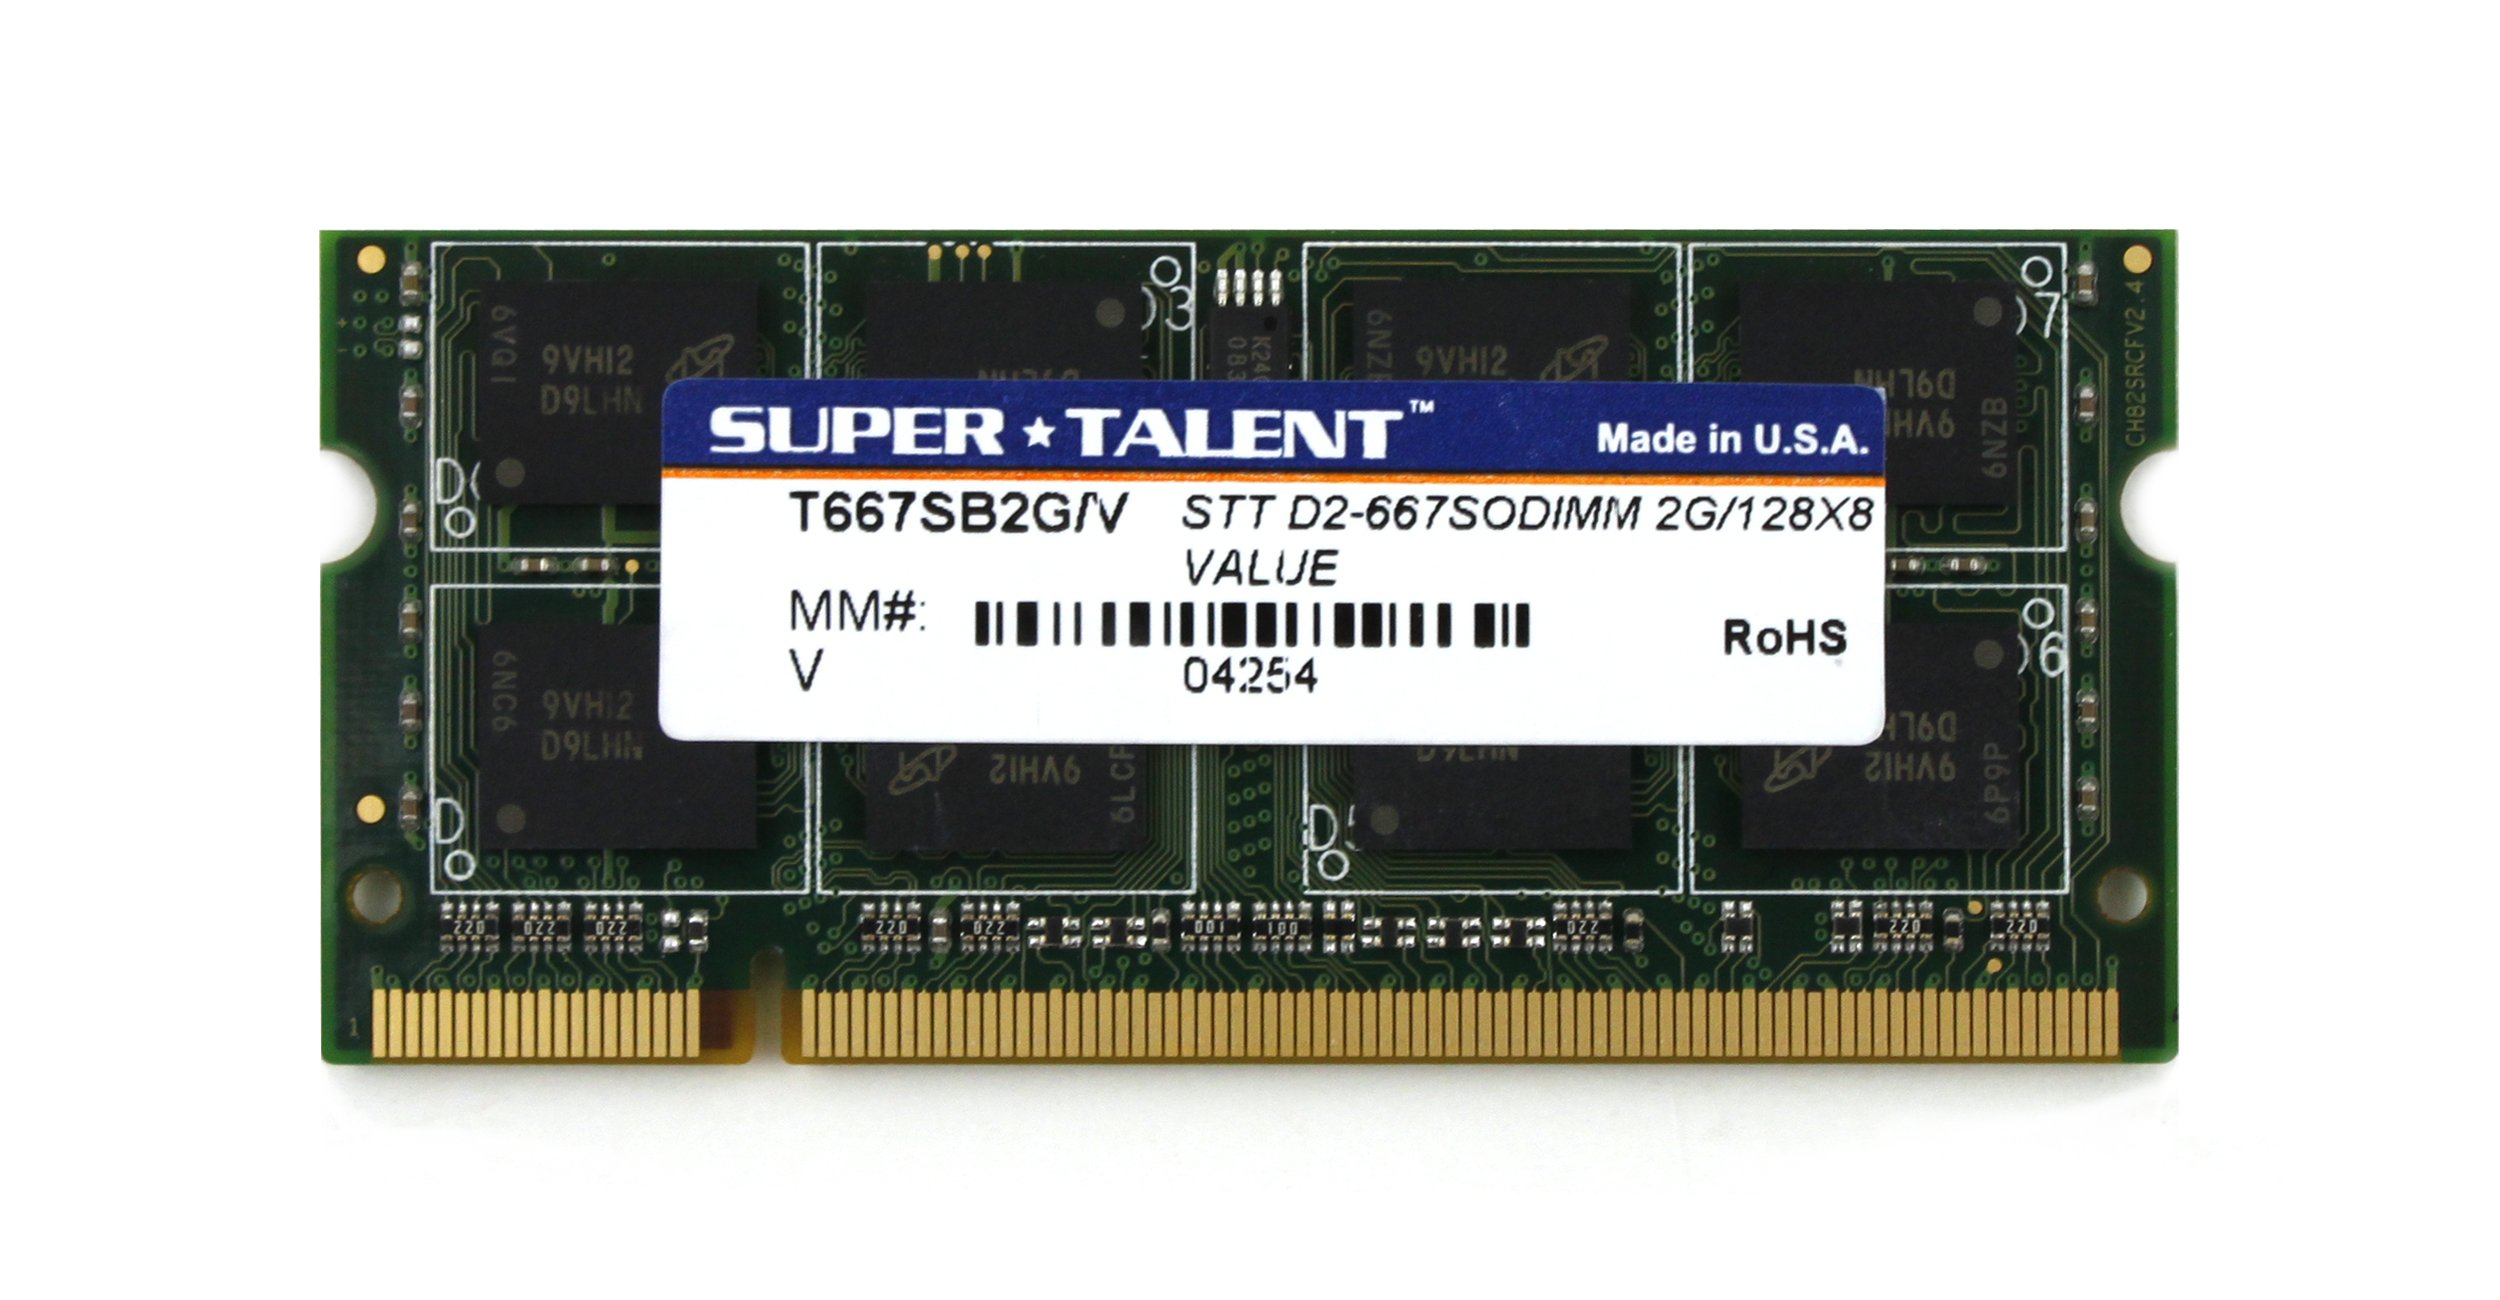 Memoria Ram 2GB DDR2 667MHZ PC2-5300 SODIMM SUPER TALENT